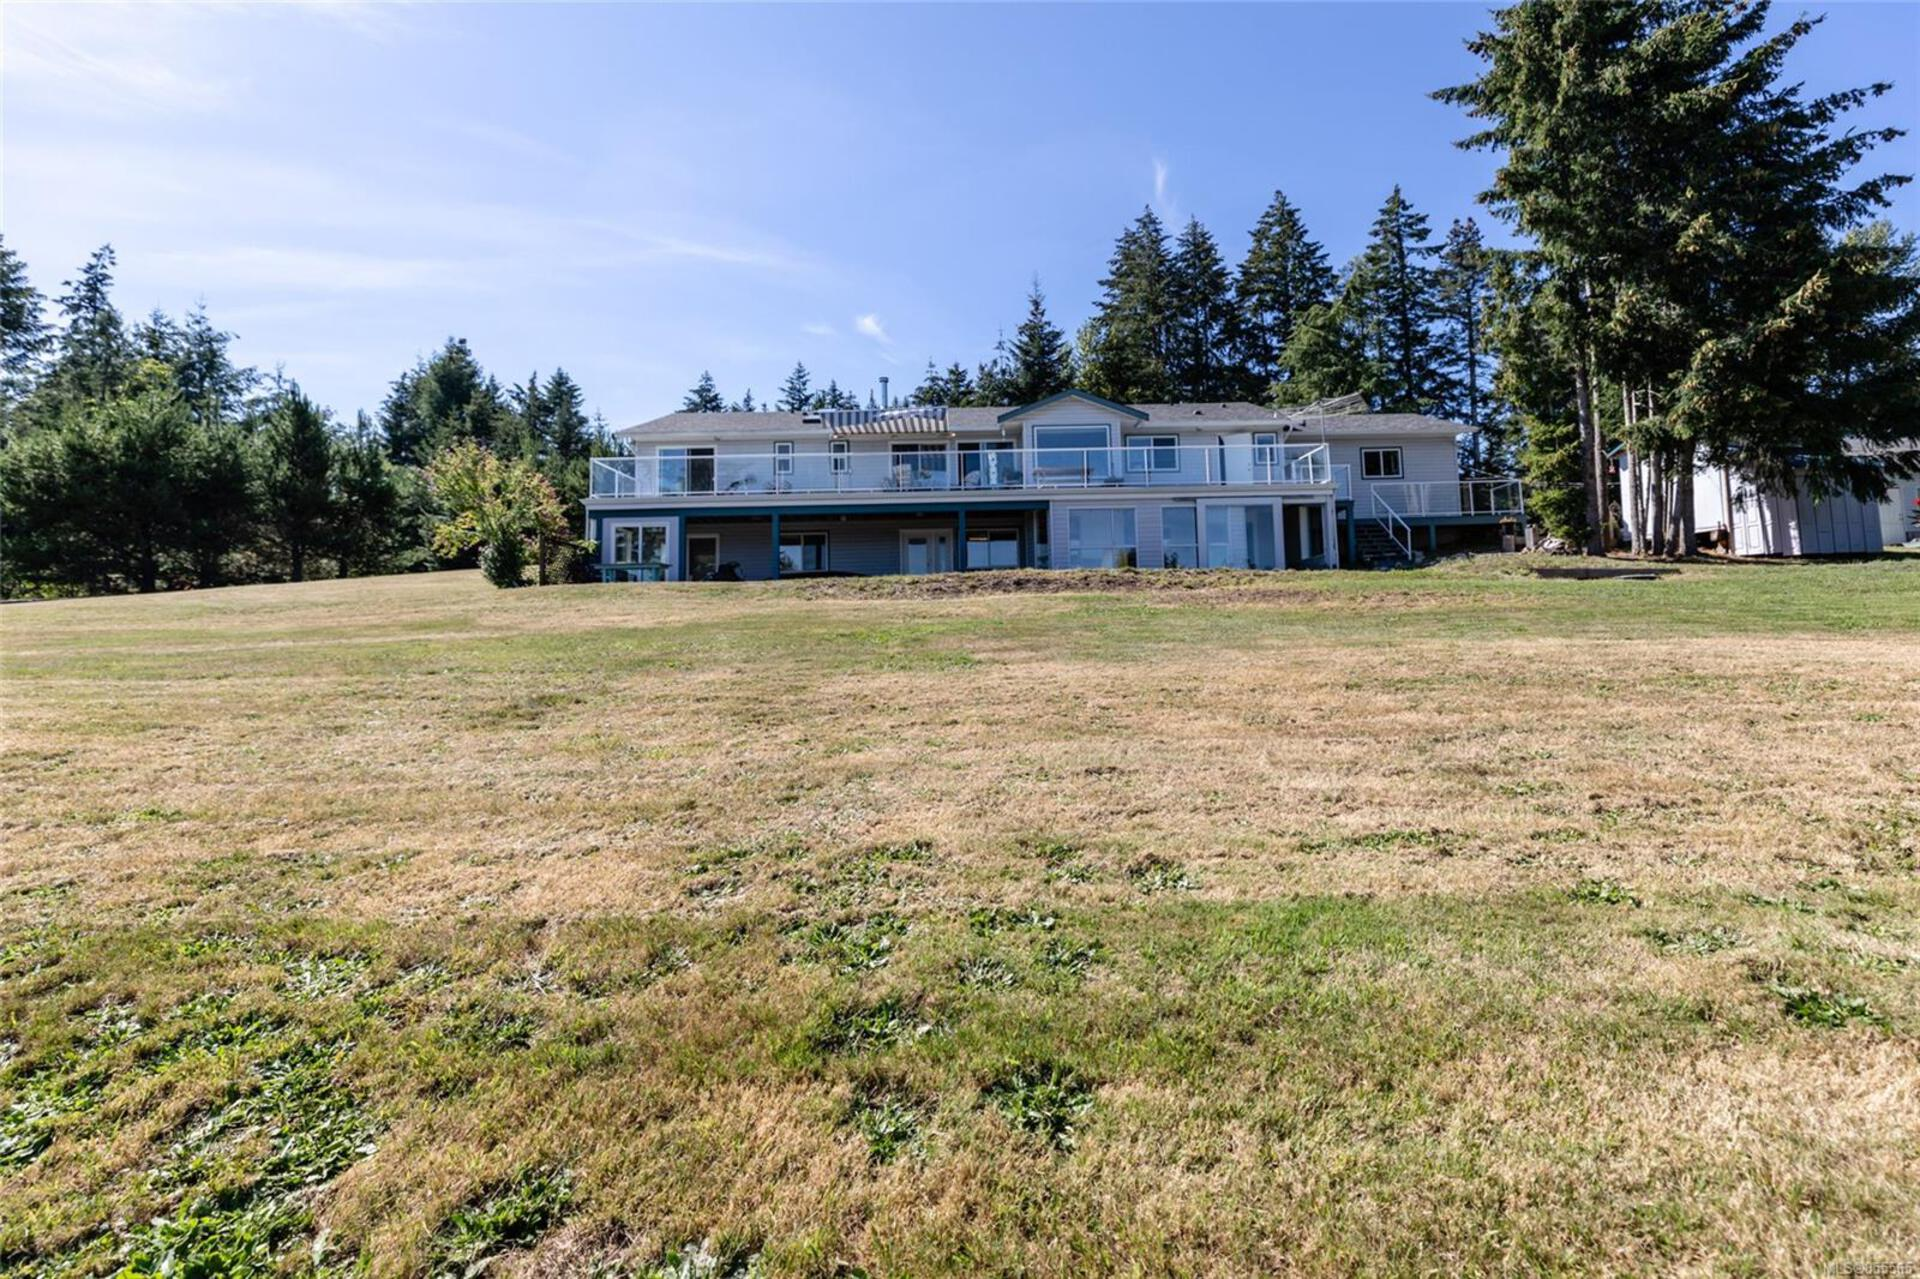 400-holiday-road-union-bayfanny-bay-comox-valley-29 at 400 Holiday Road, Comox Valley